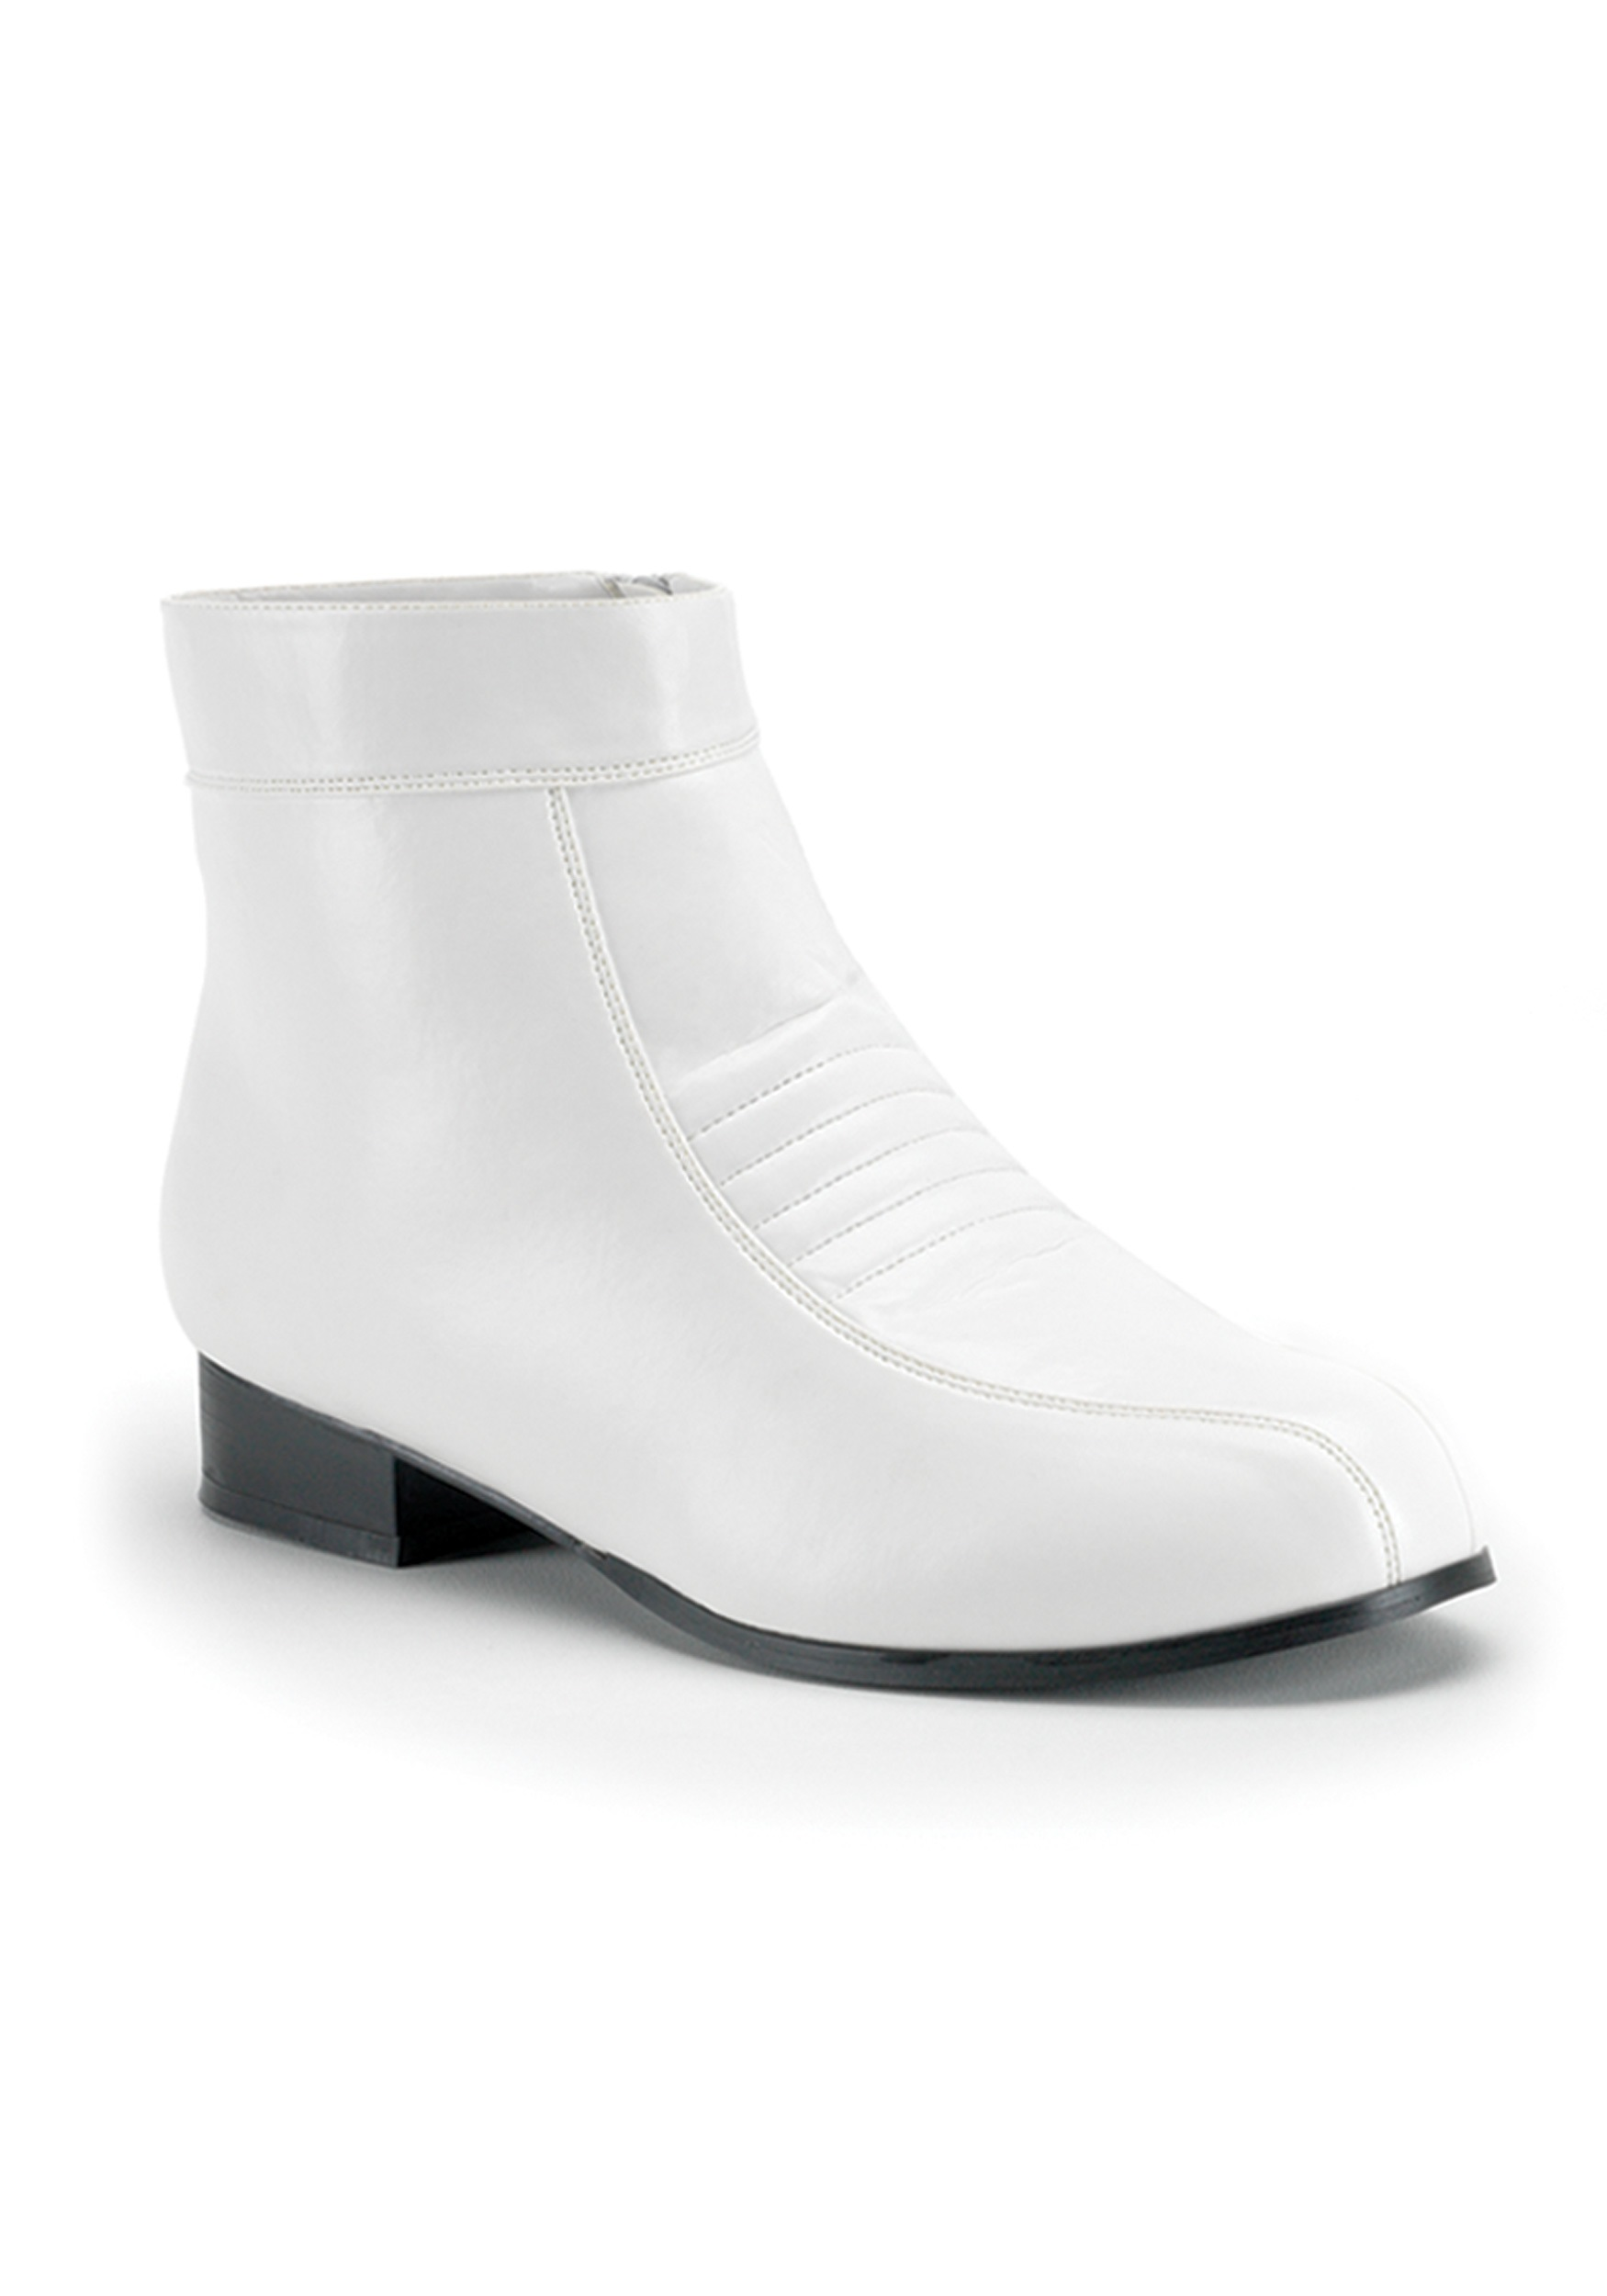 White Mens Boots - Adult Halloween Costume Boots